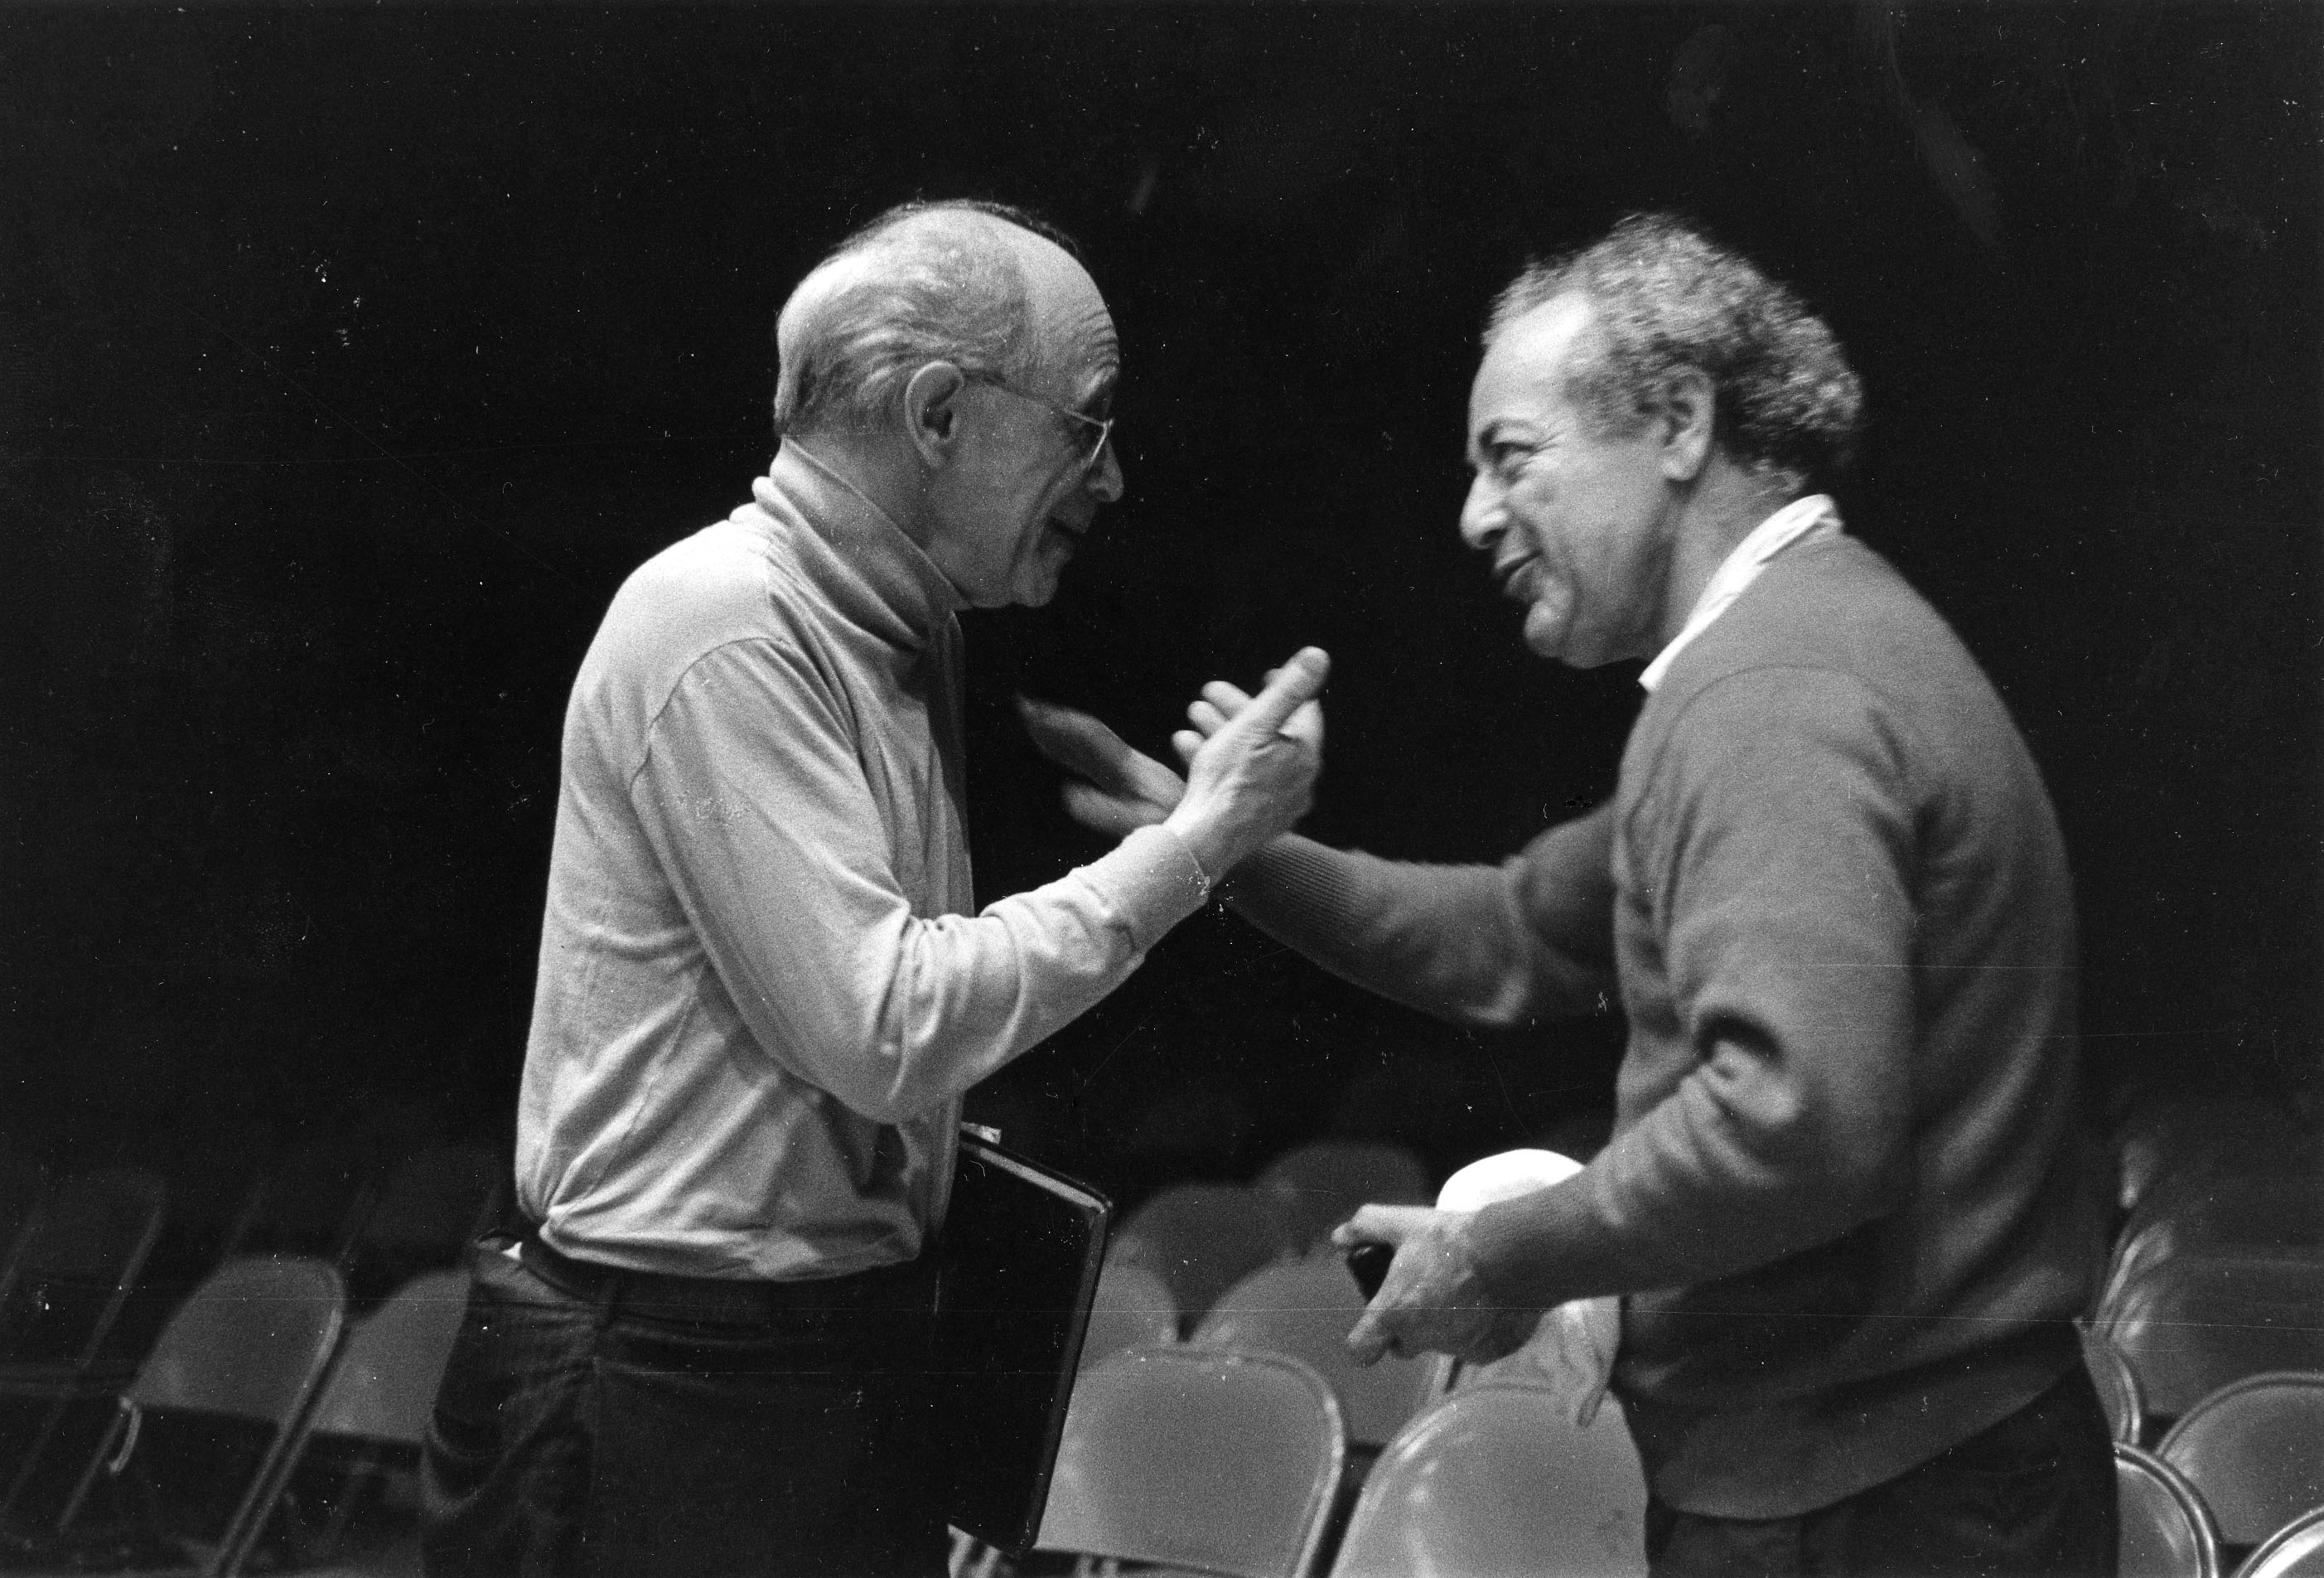 "Rudolf Serkin and Alexander Schneider | ""For me, my purpose is to get young people to learn how to make music. When you make music, it has to come from your heart, from your soul, or it has no meaning. It's an extraordinary experience when I see the results. They produce a sound a professional orchestra couldn't:  a love of music."" -Sasha Schneider"